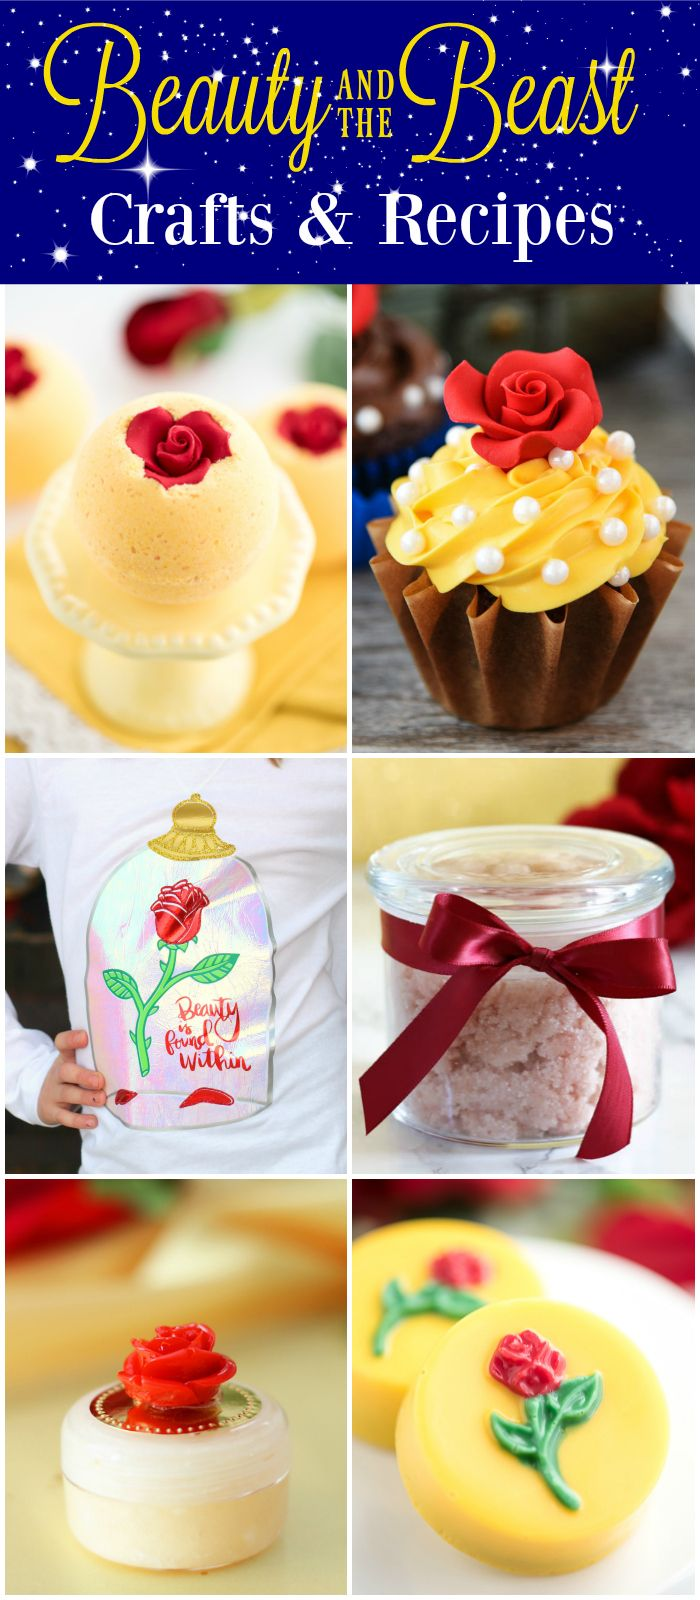 Beauty and the Beast crafts, recipes, and party ideas!